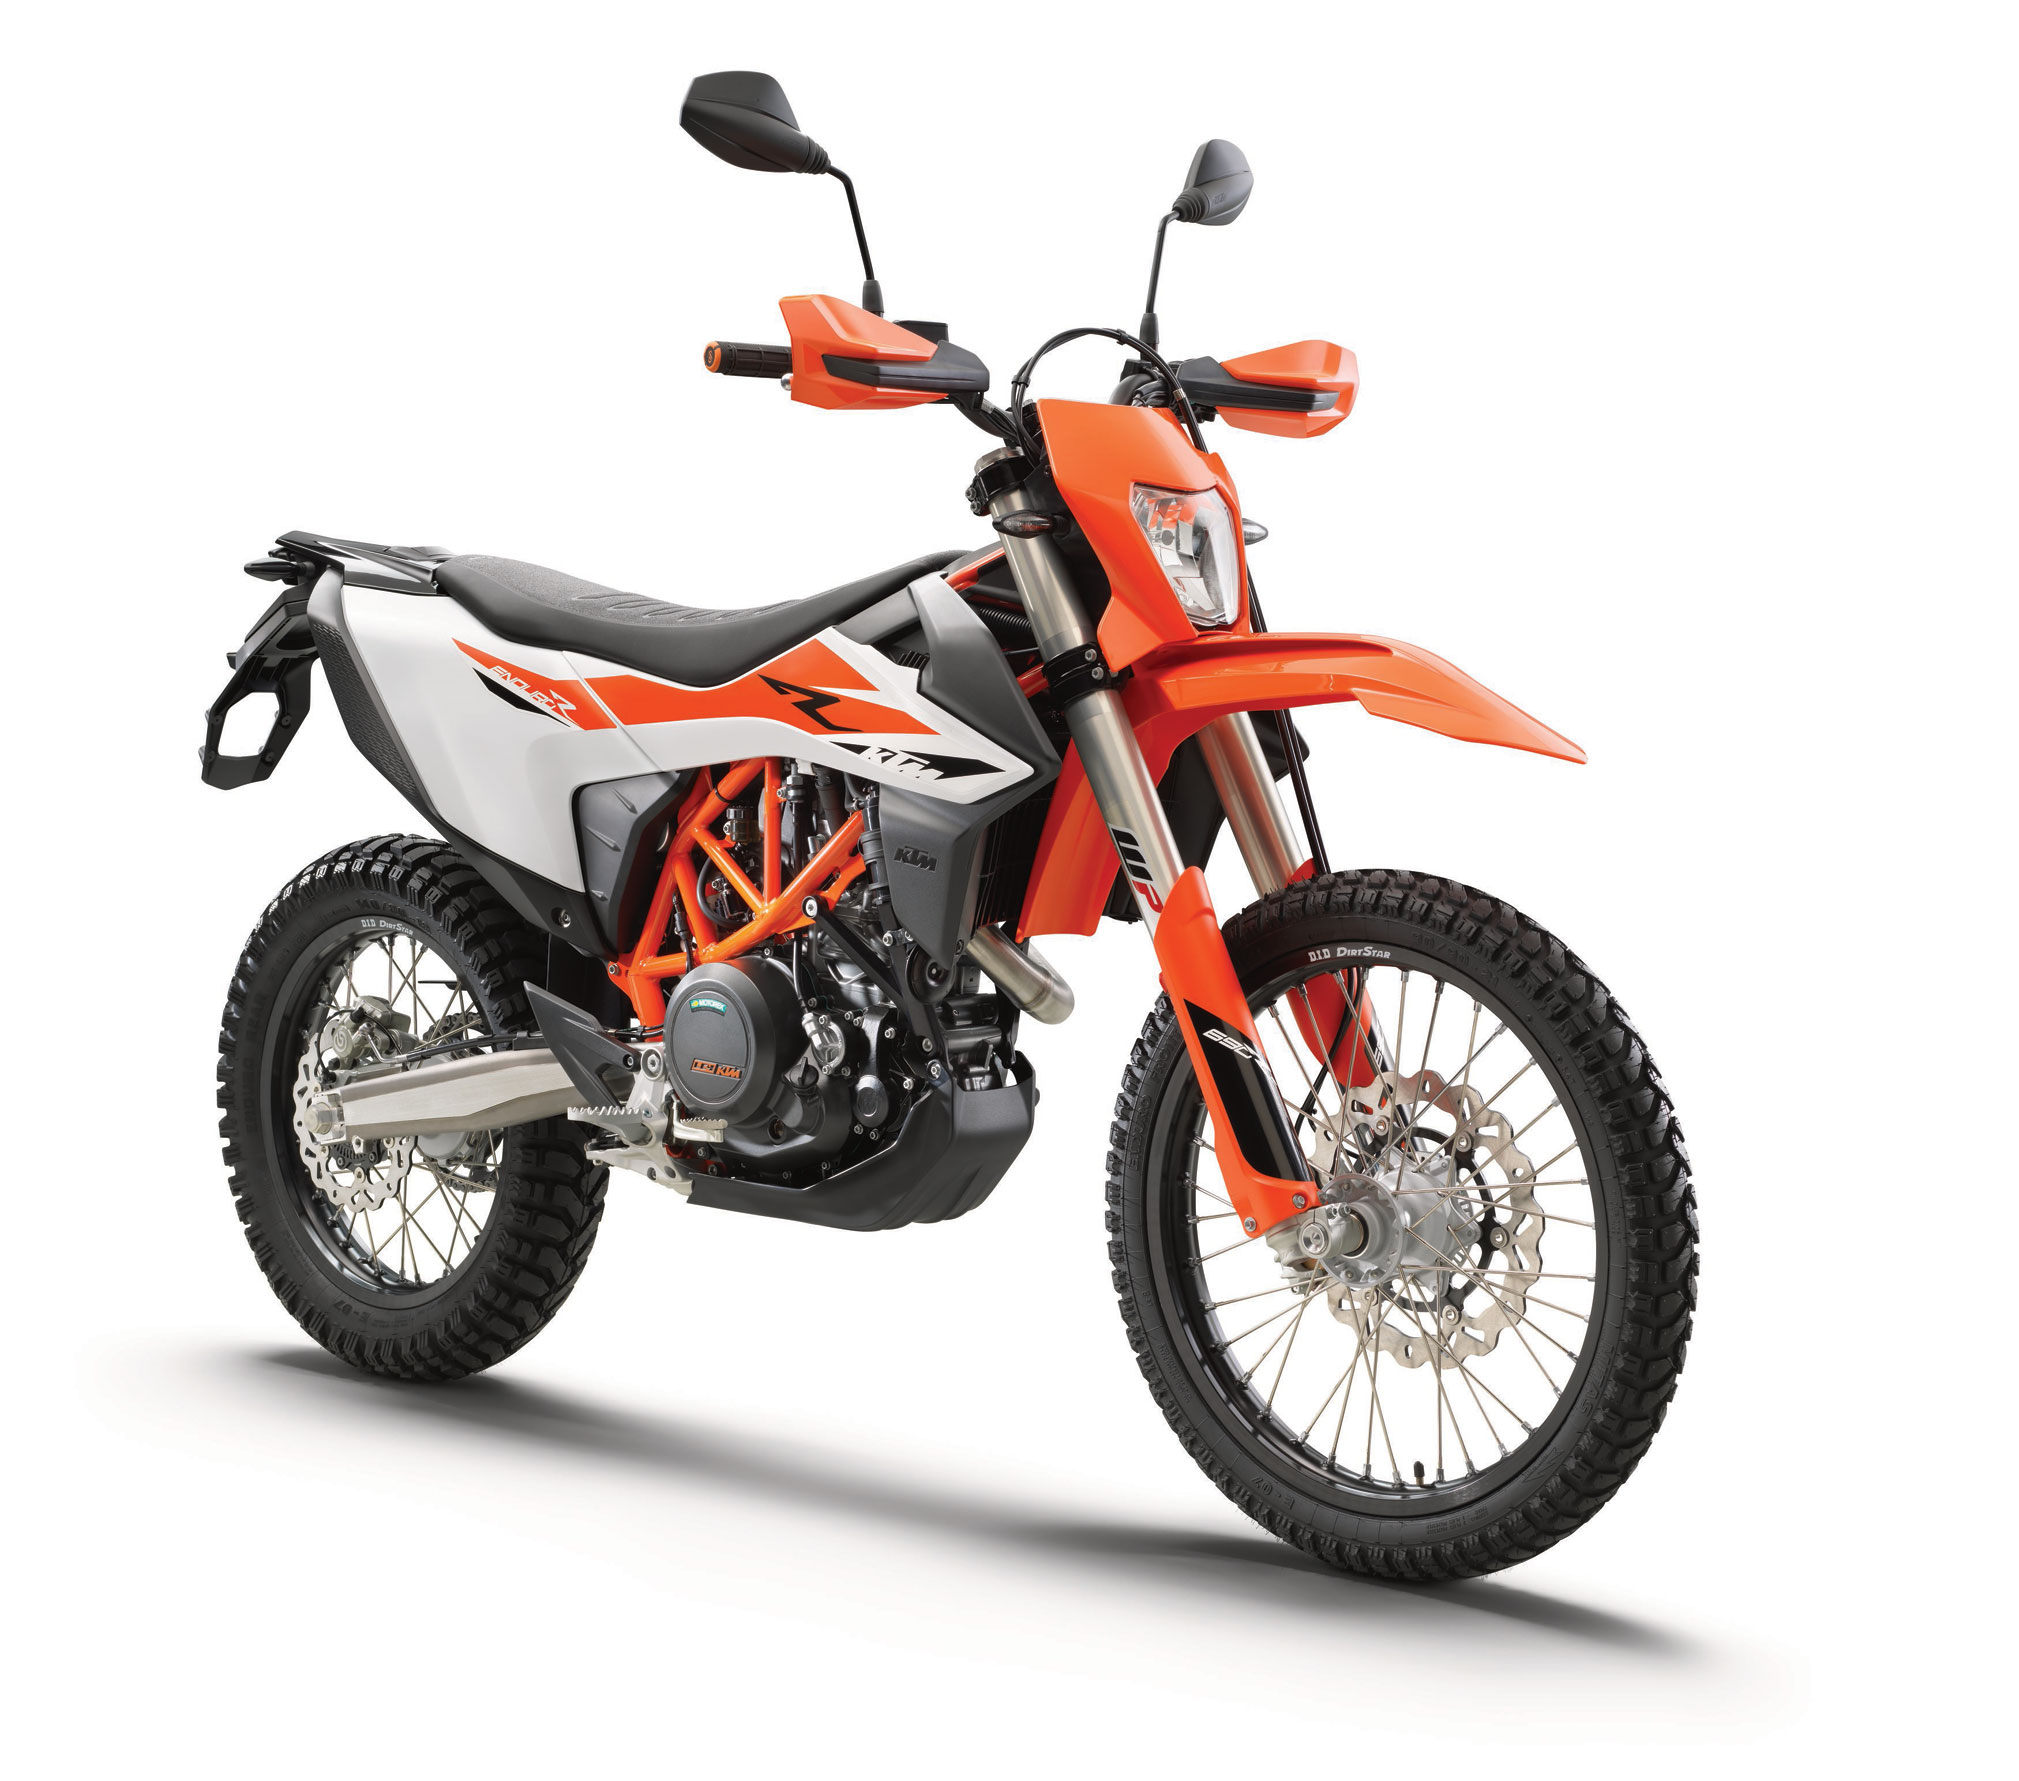 2019 KTM 690 Enduro R Guide • Total Motorcycle